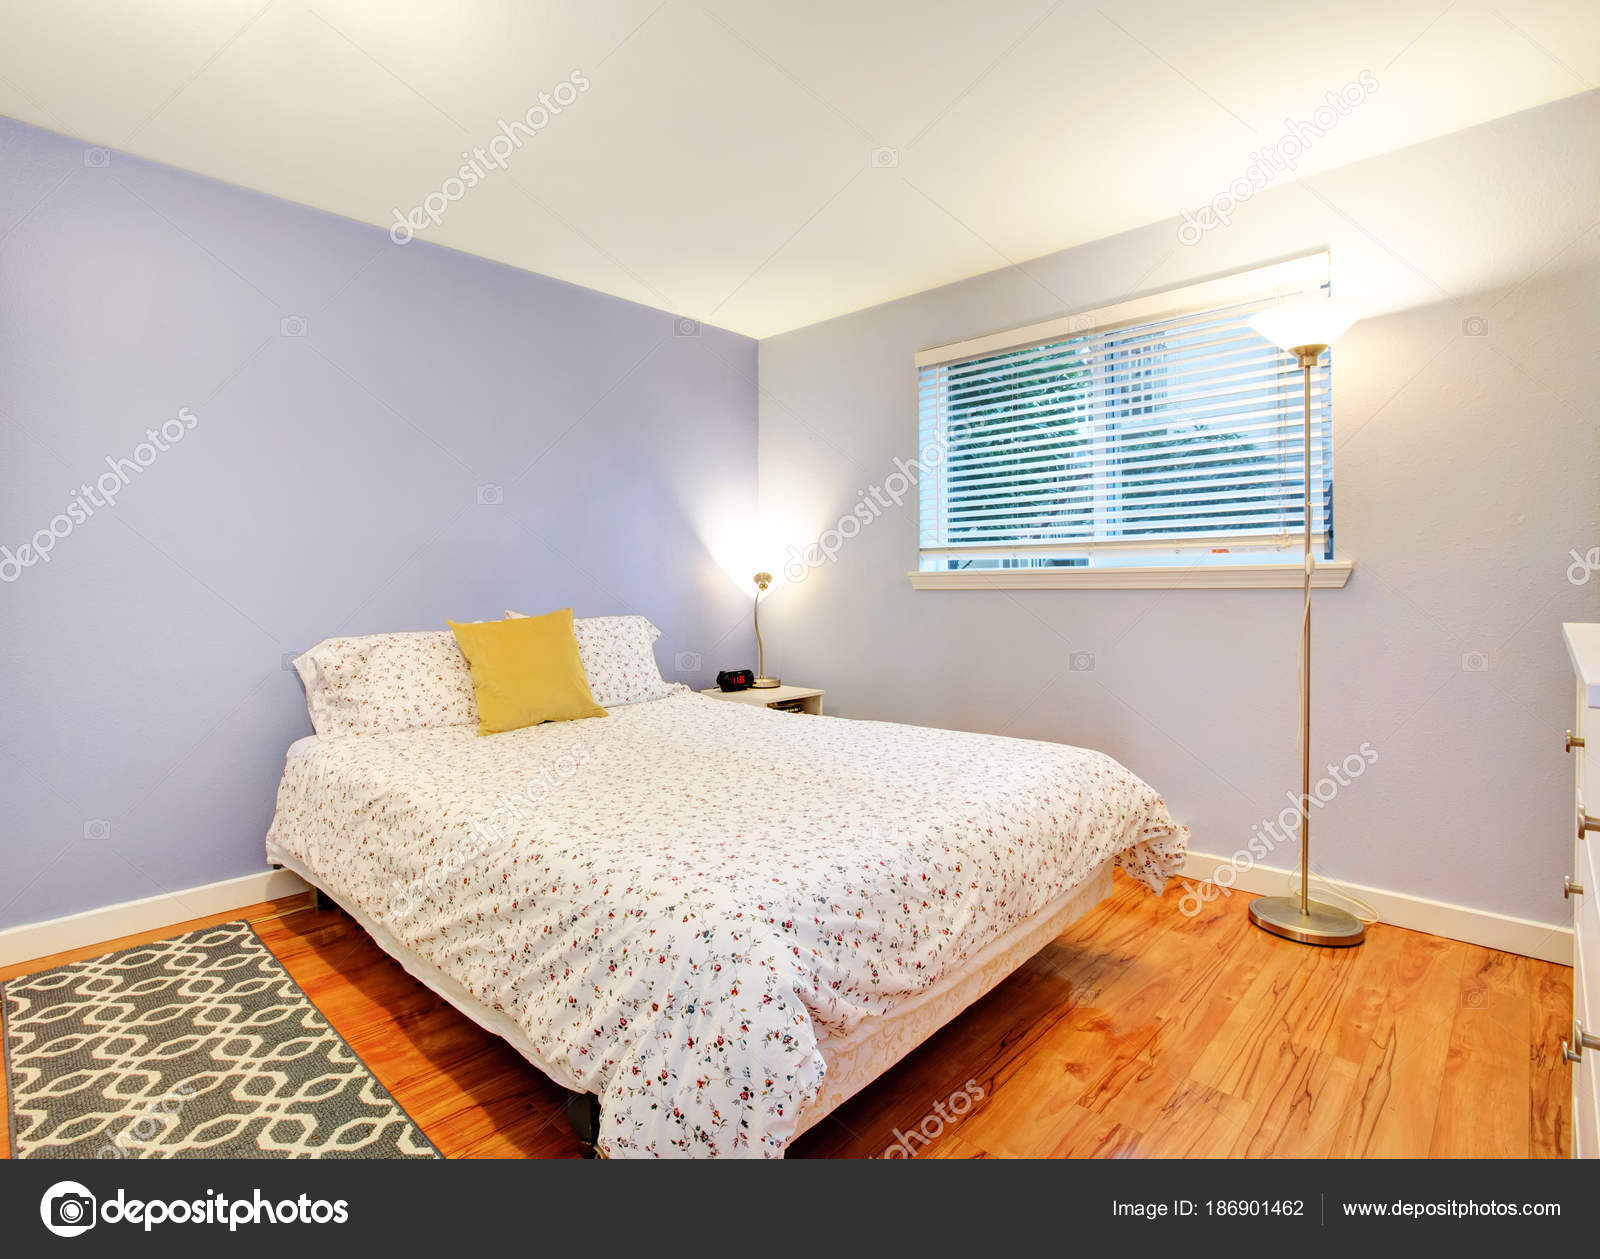 Welcoming Bedroom With Lavender Walls Stock Photo C Iriana88w 186901462,Farmhouse French Country Master Bedroom